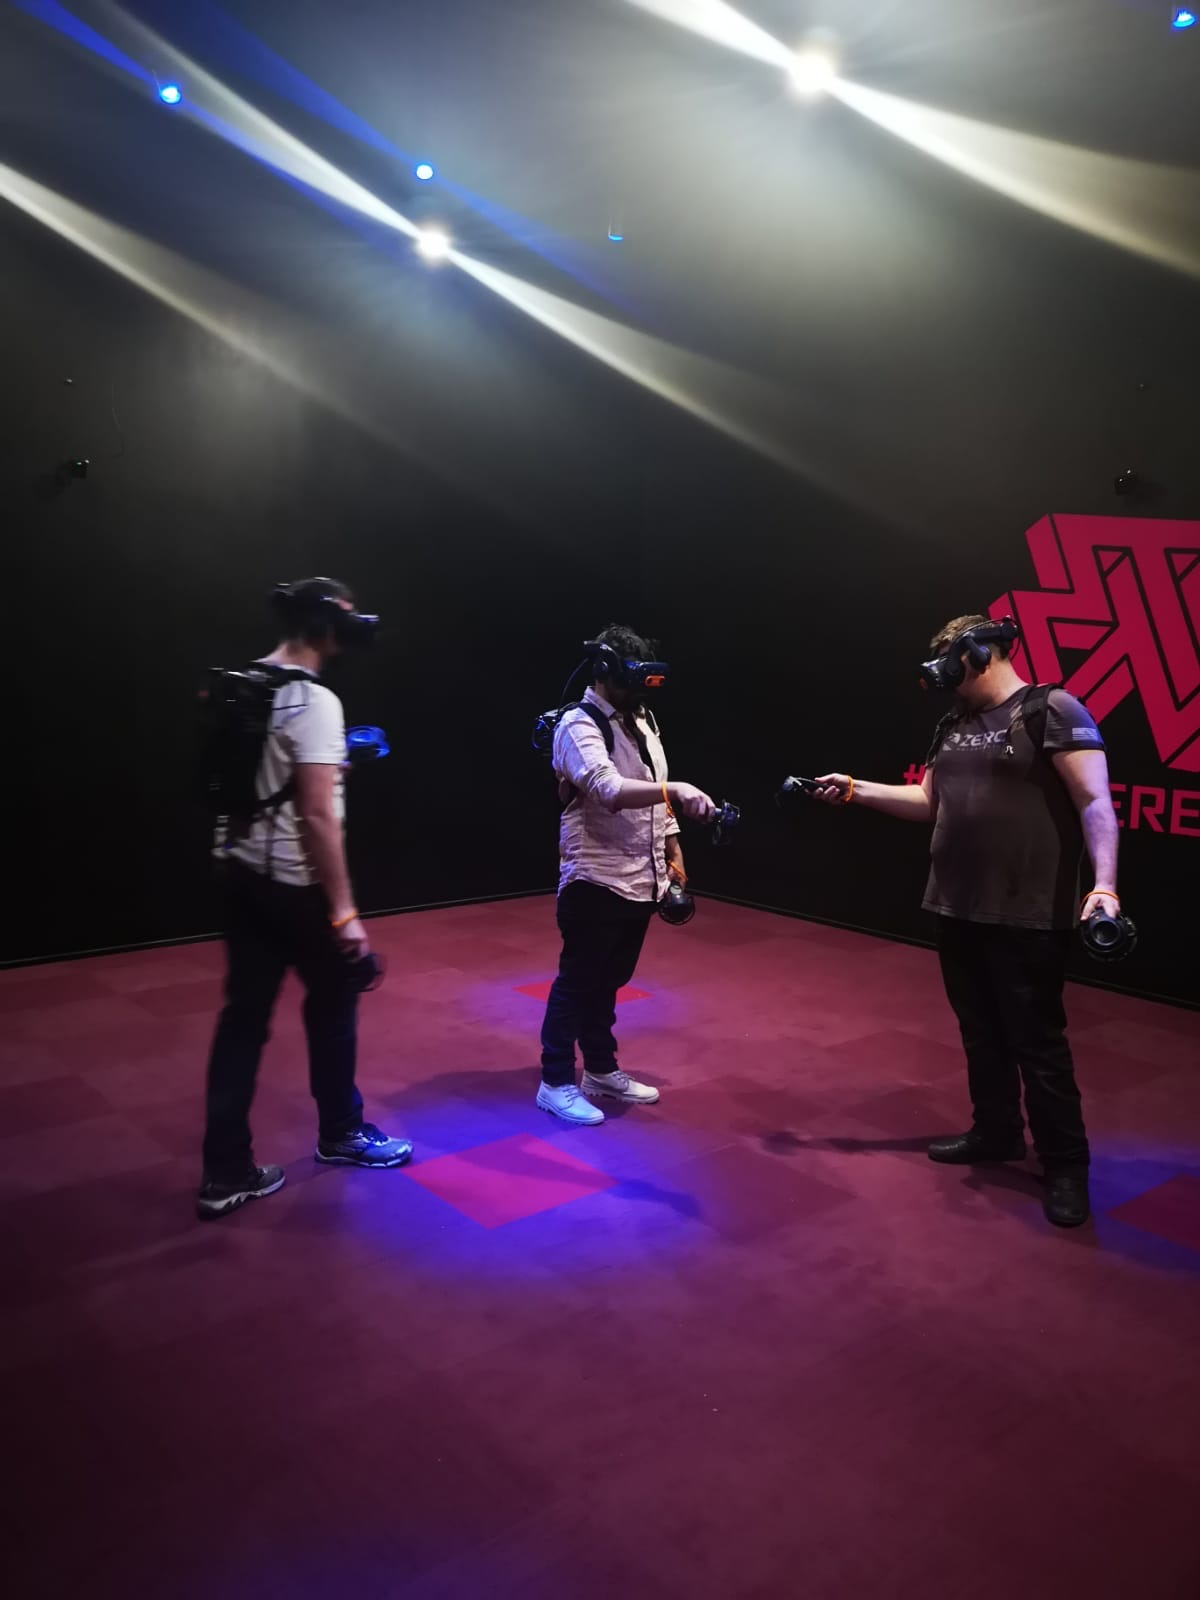 Autron VR: Hands-on with a virtual reality escape room